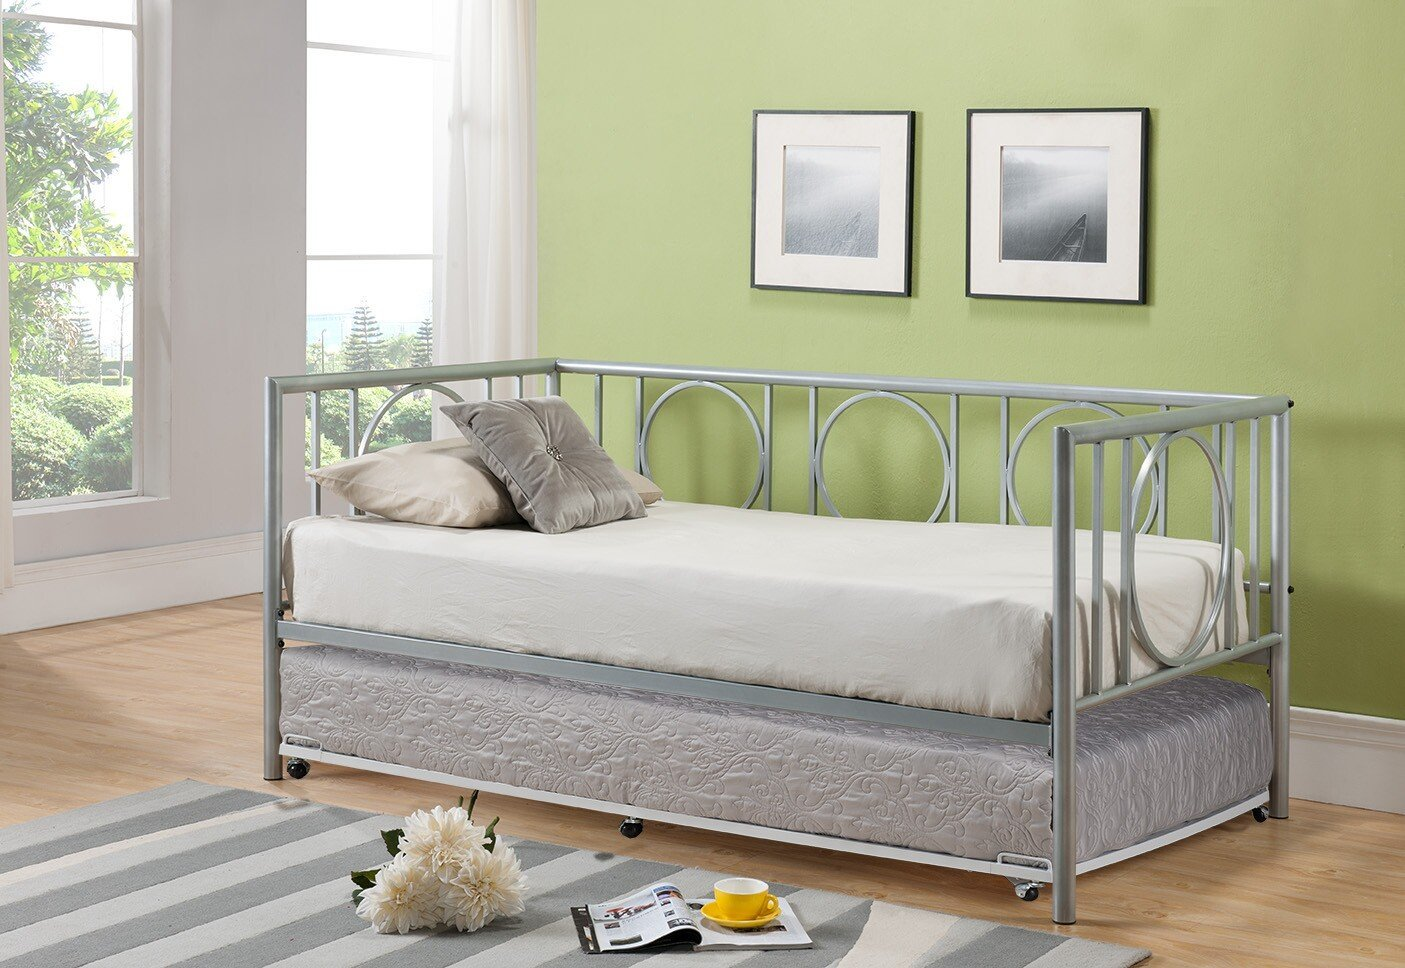 Twin bed with pull out slide out trundle bed underneath - Small beds for adults ...